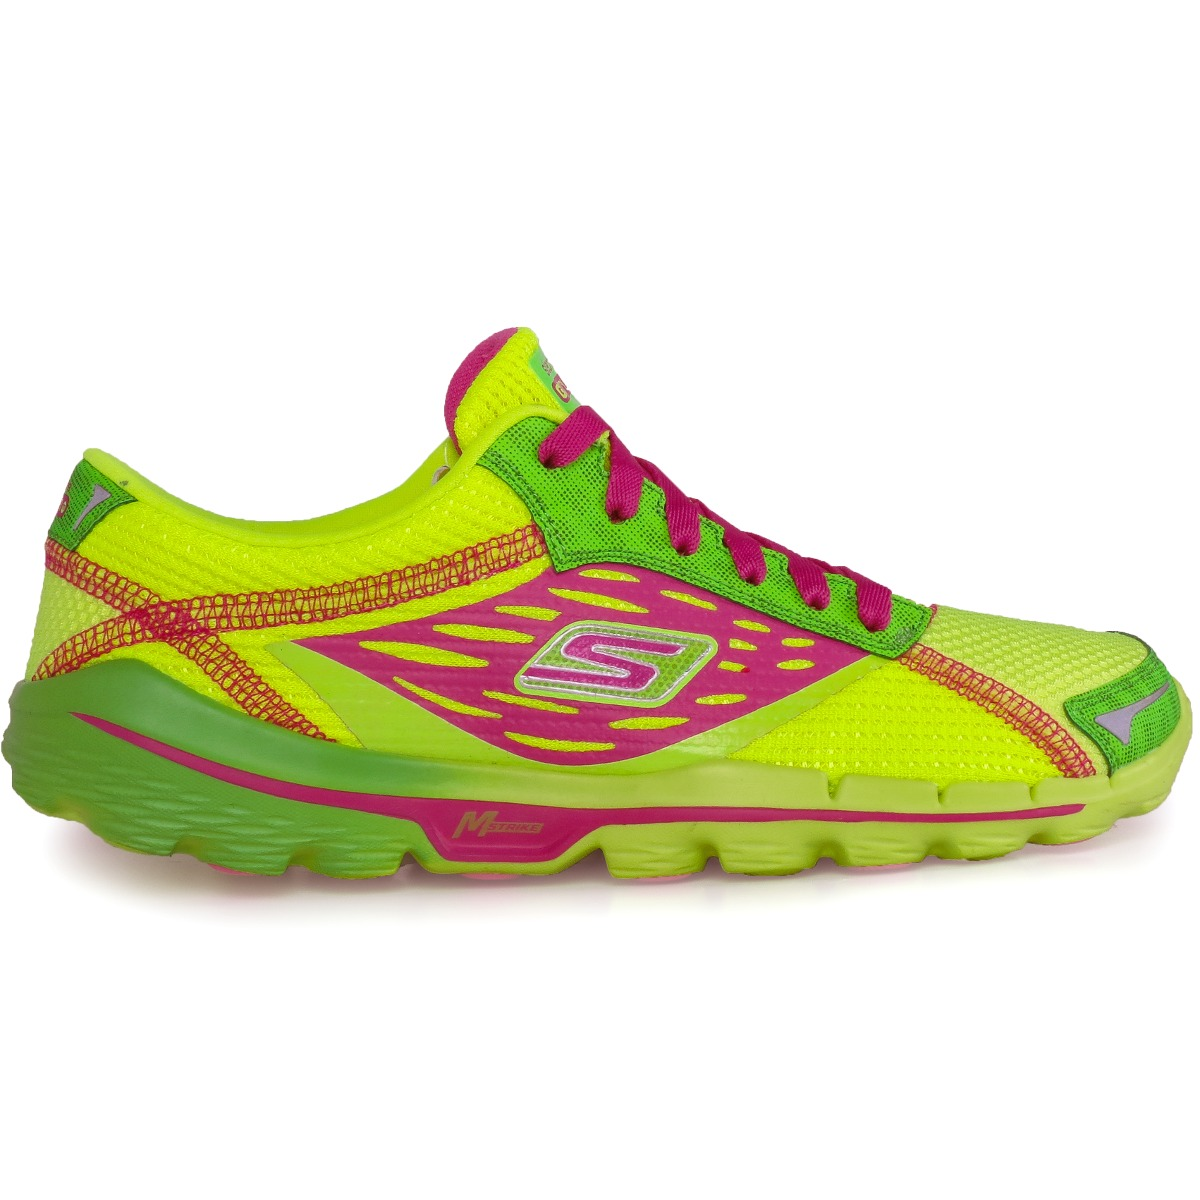 Zapatillas - Skechers Zapatillas de Running Skechers Go Run 2